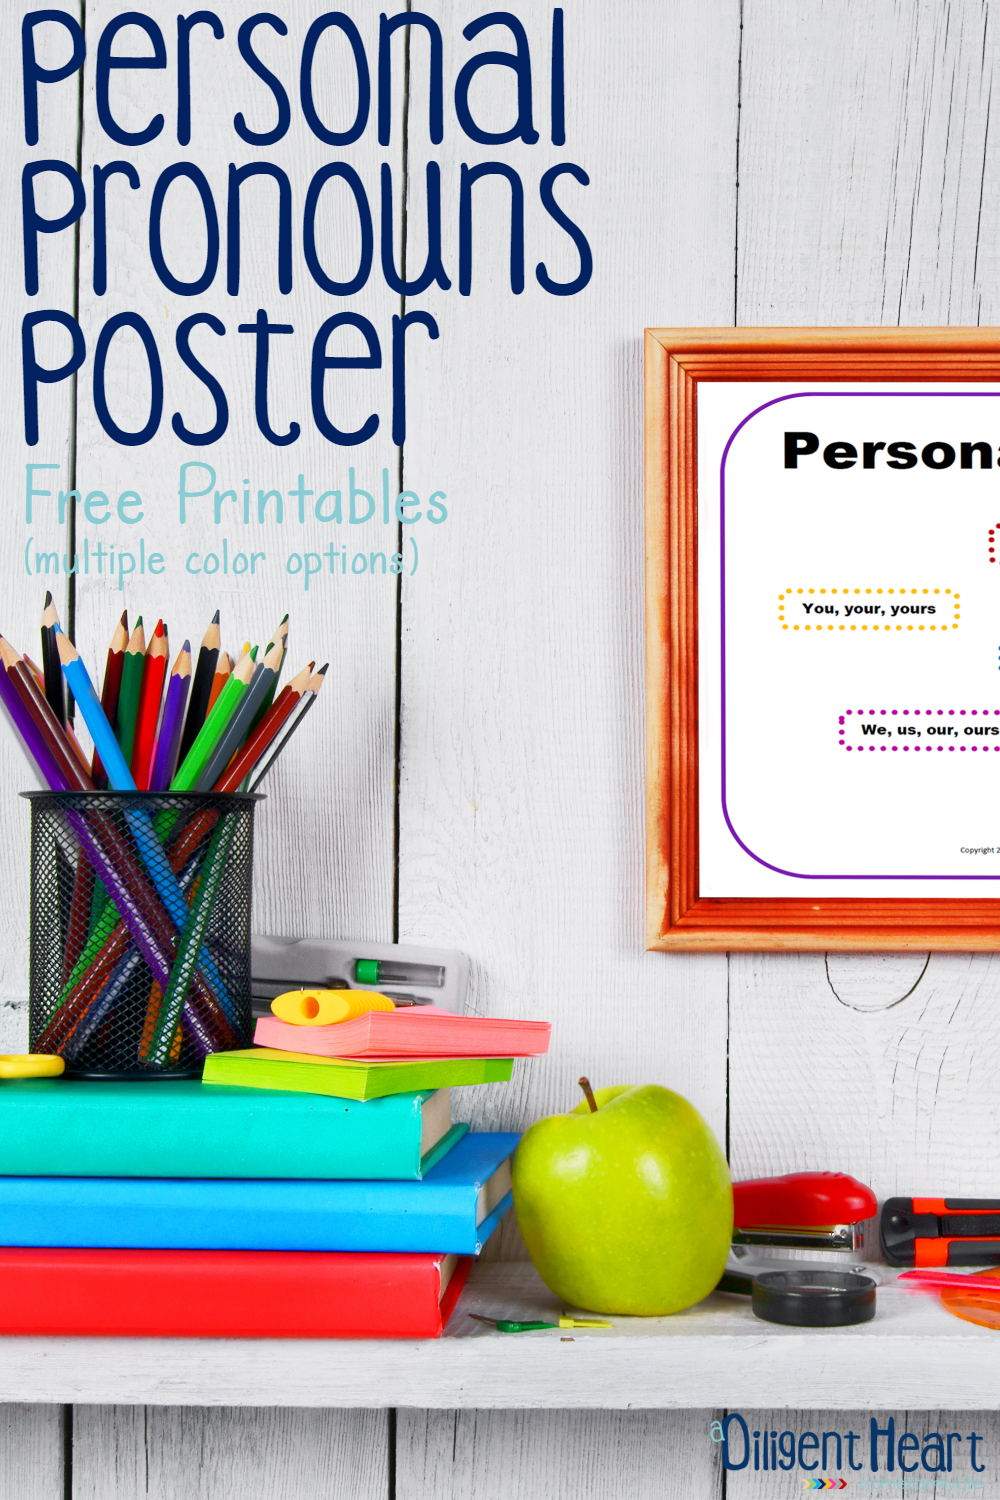 Studying pronouns with your kiddos this year? Use this wall poster to help them practice their pronouns. It's great for them to keep on hand while working through grammar lessons too! Personal Pronouns Poster | adiligentheart.com